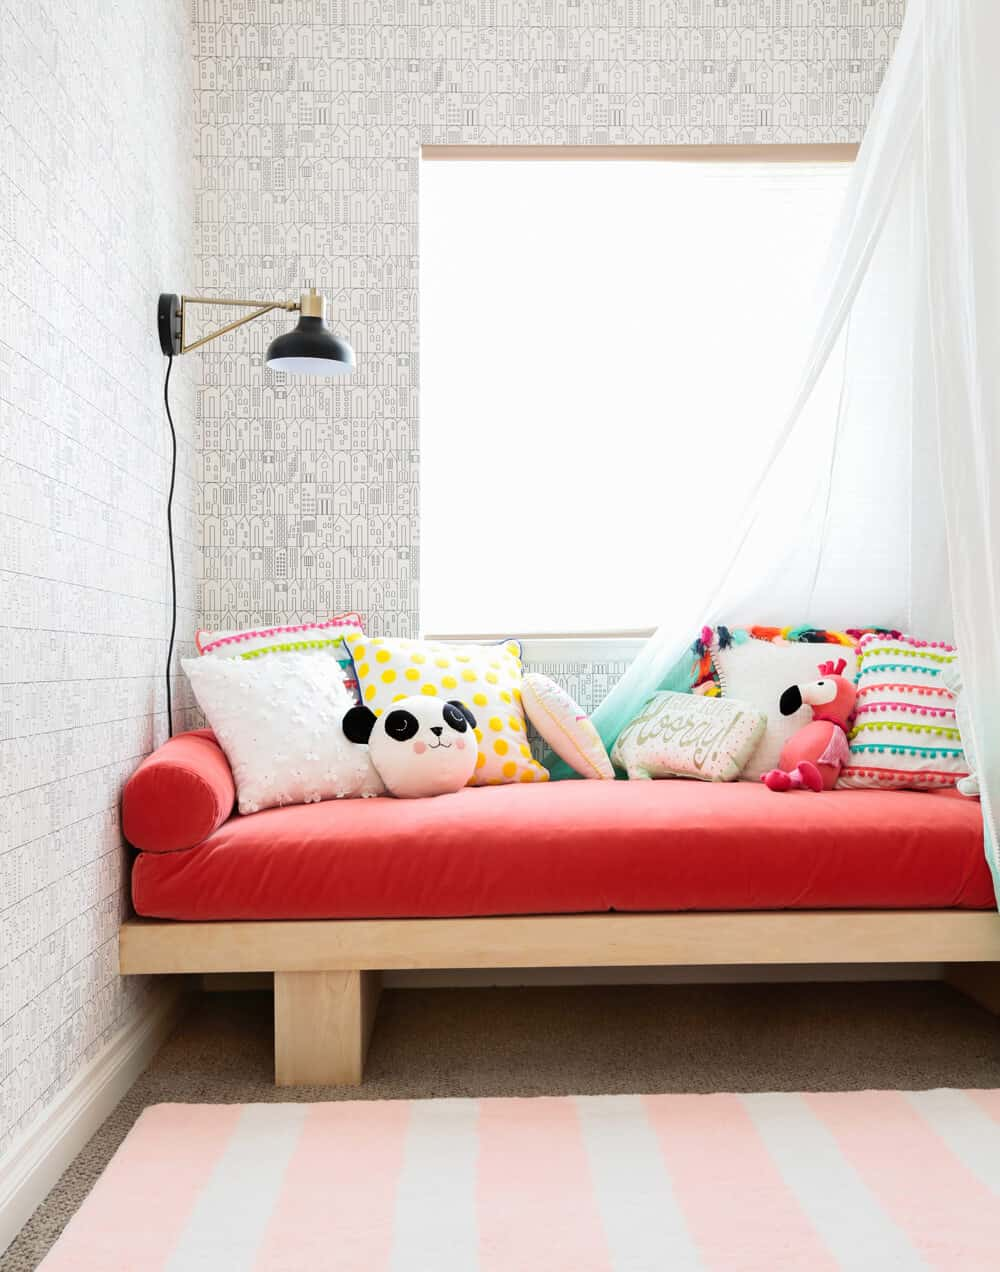 Daybed Construction Target Weekend Makeover Kids Playroom Pink Red Wallpaper Canopy 3